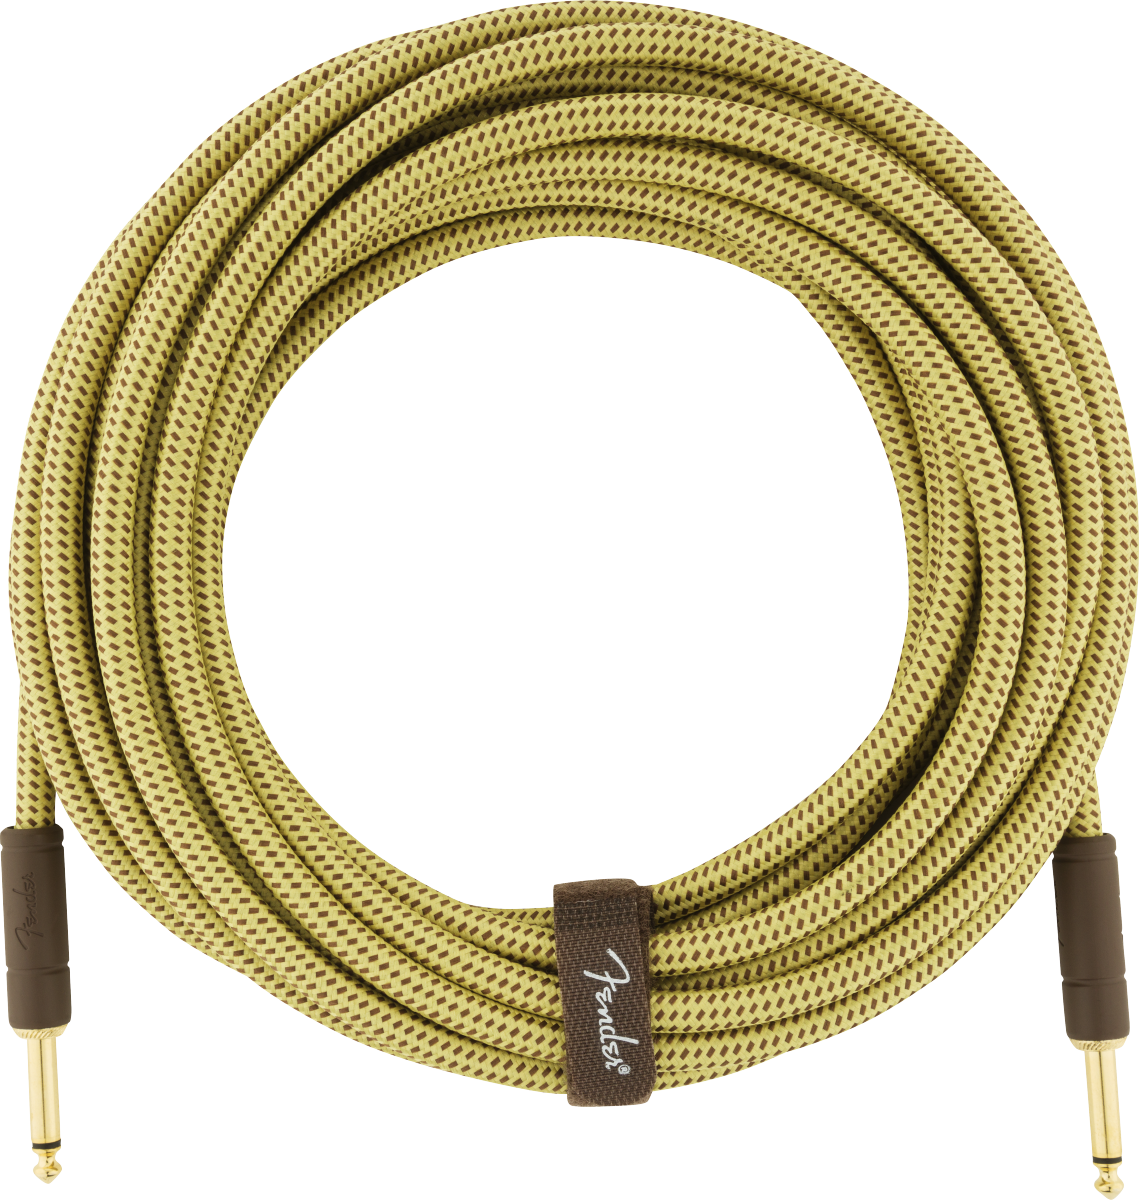 Fender Deluxe Series Instrument Cable, Straight/Straight, 25', Tweed